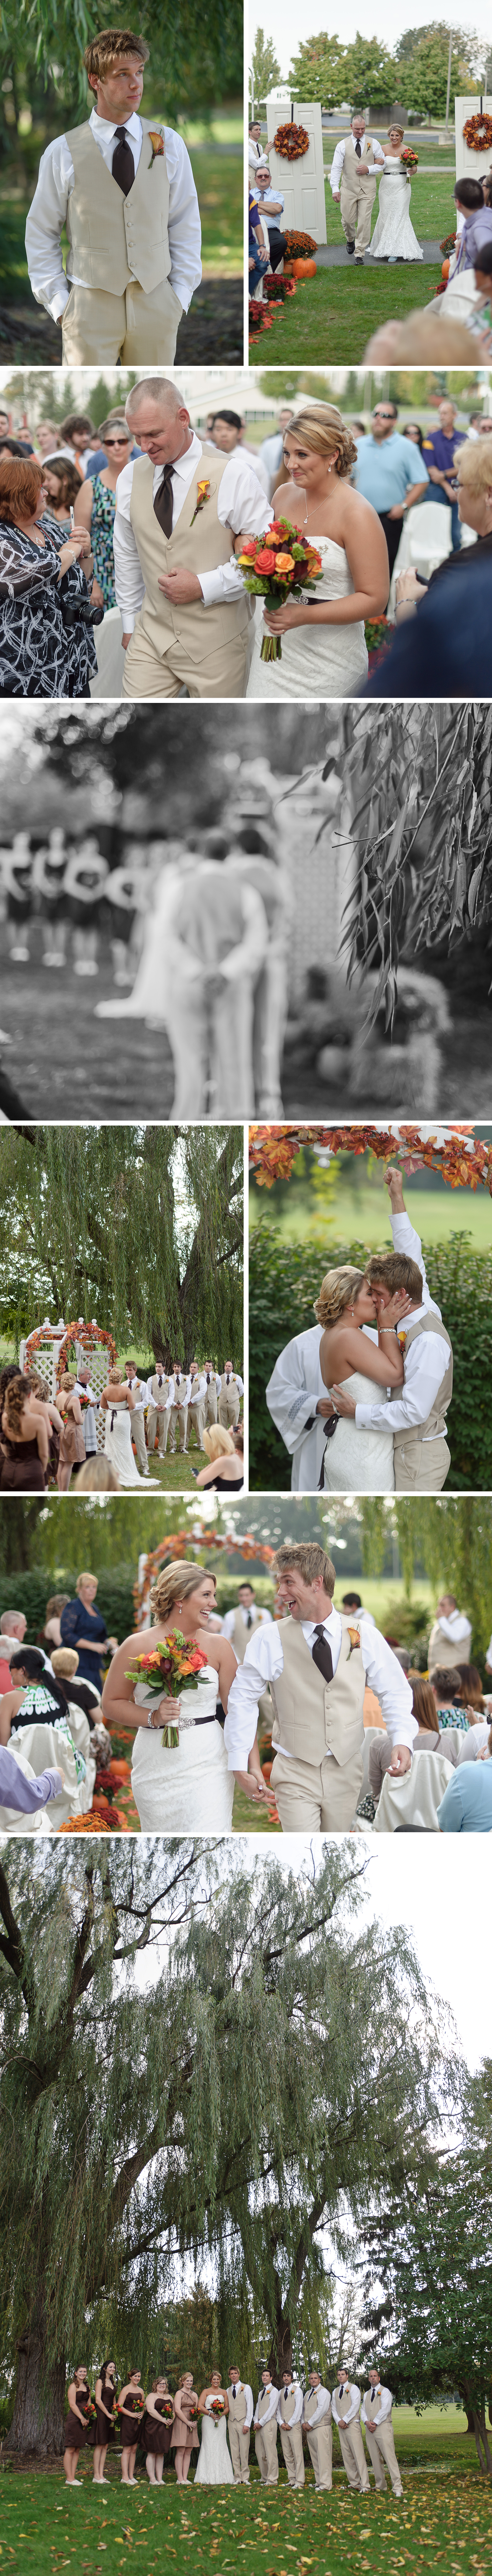 Lancaster Host Resort wedding photography by Jeremy Bischoff Photography